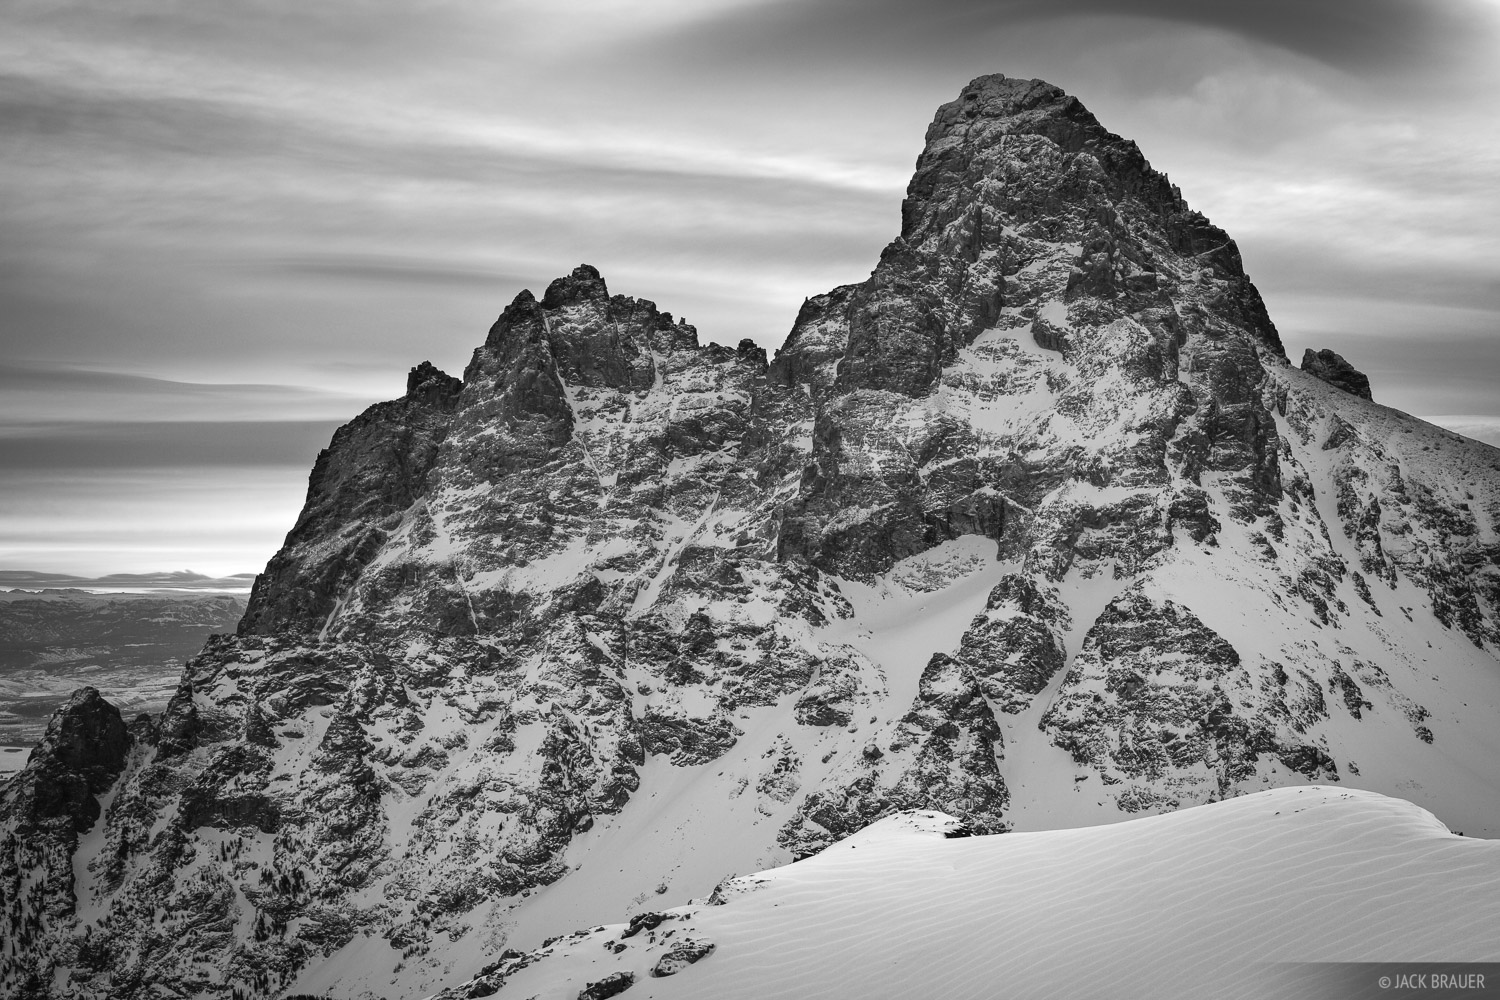 Tetons, Wyoming, bw, Grand Teton, Table Mountain, January, Grand Teton National Park, photo